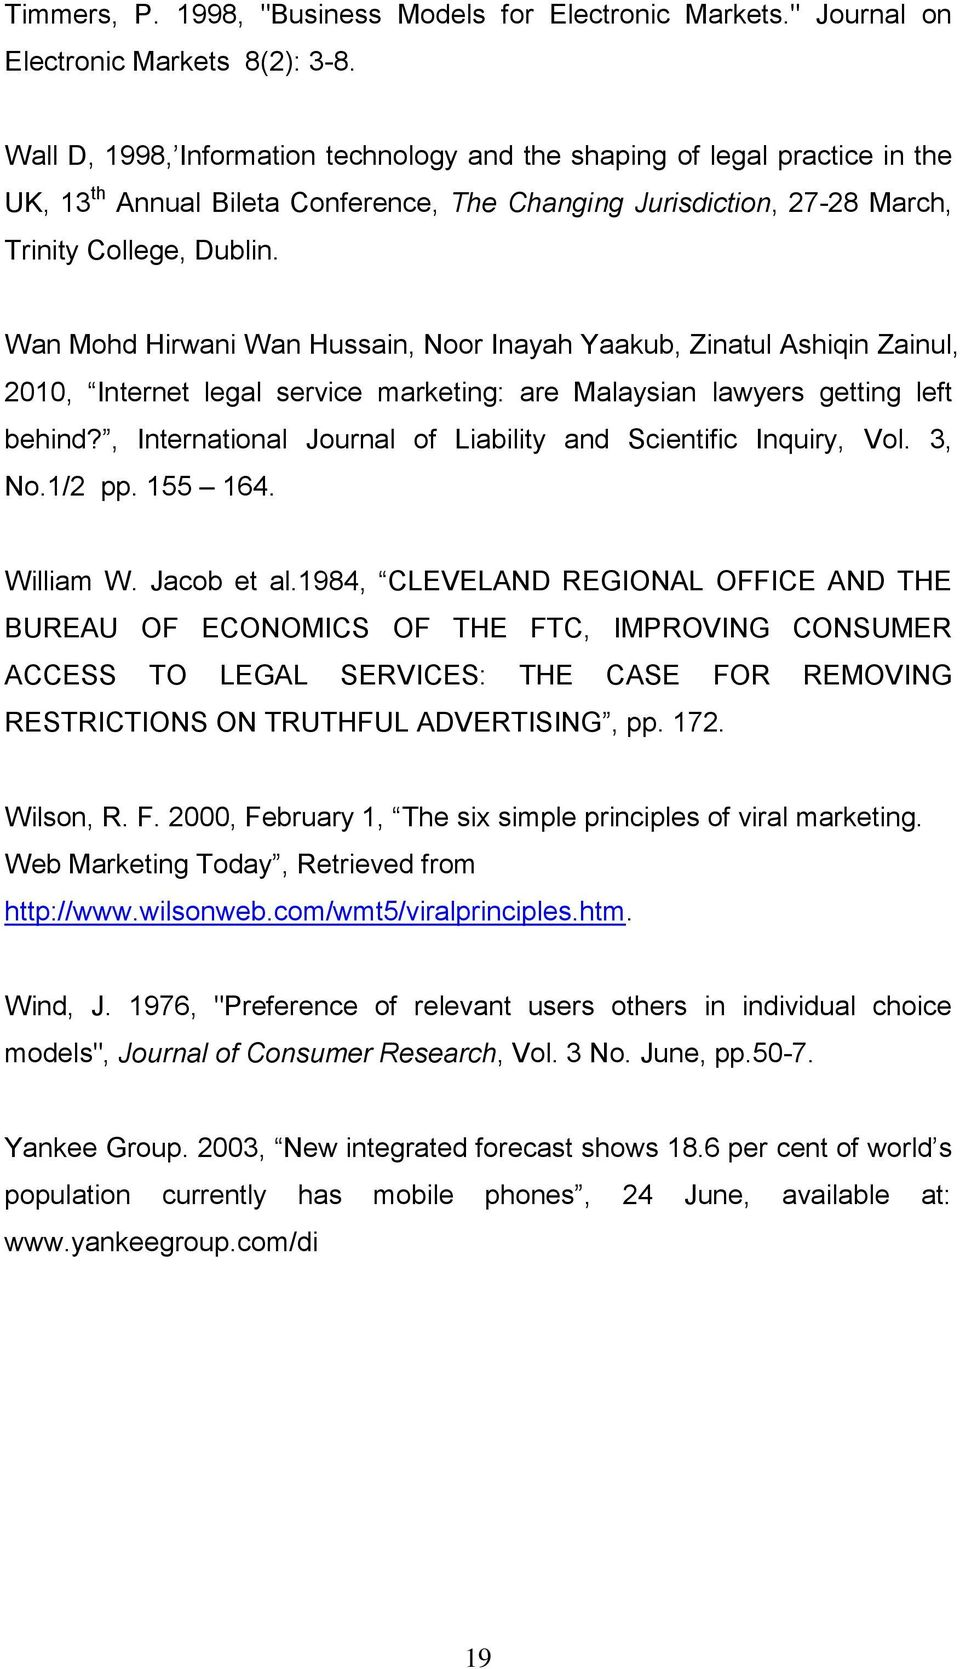 Wan Mohd Hirwani Wan Hussain, Noor Inayah Yaakub, Zinatul Ashiqin Zainul, 2010, Internet legal service marketing: are Malaysian lawyers getting left behind?